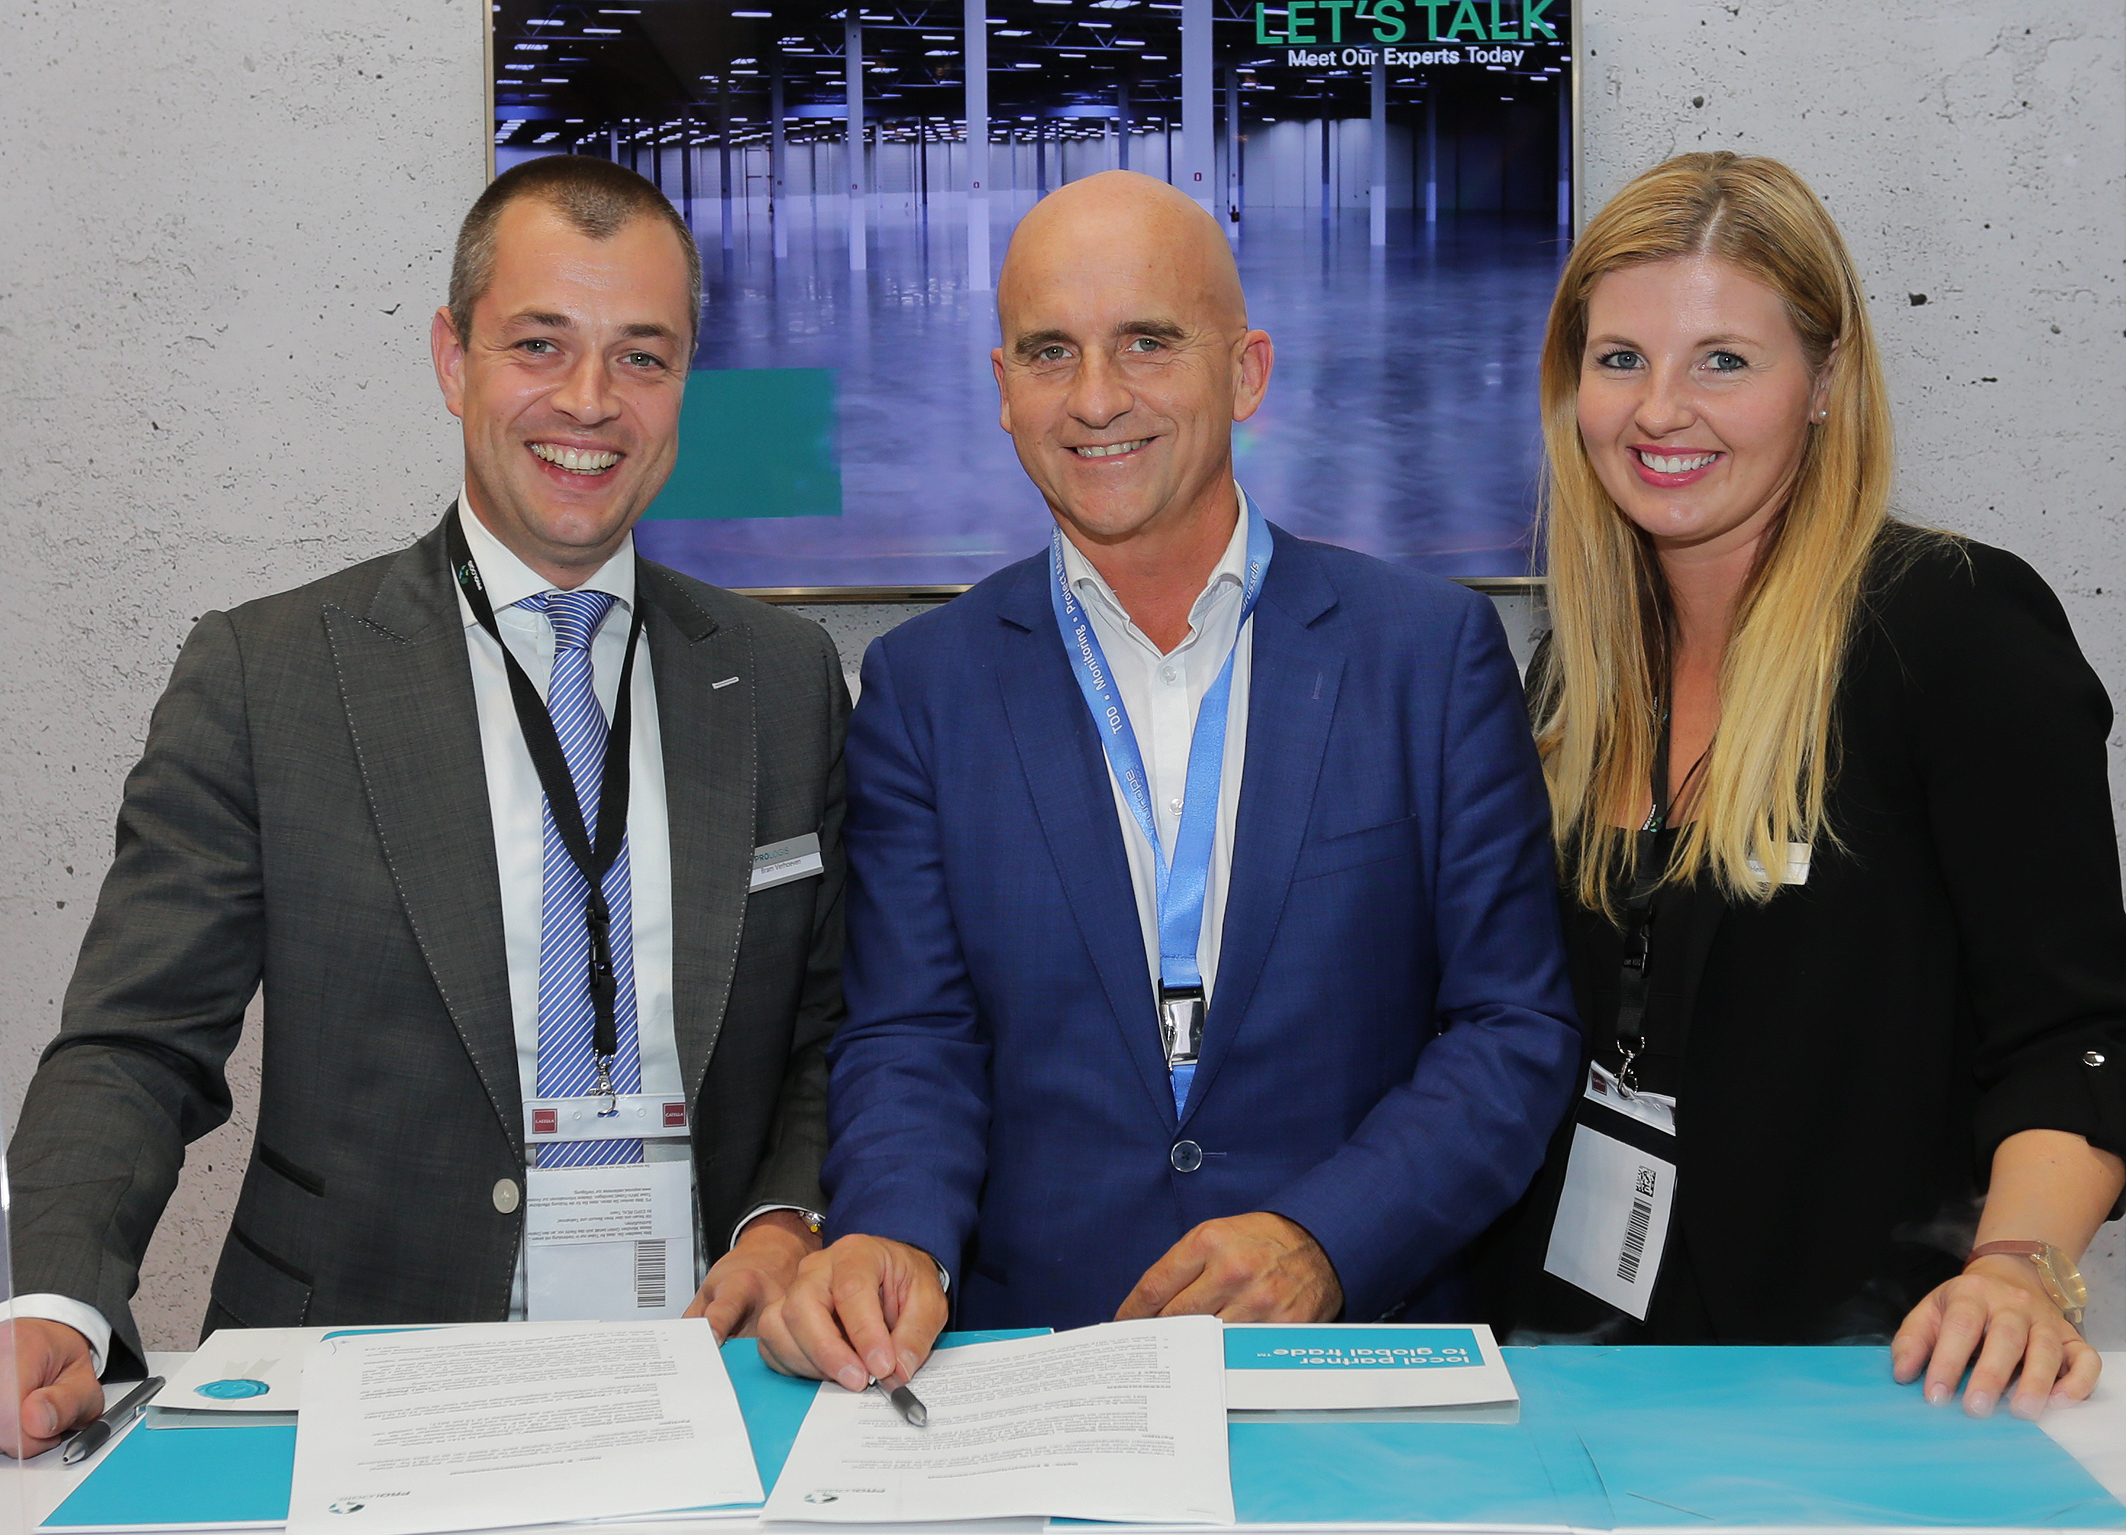 Representatives of Prologis and the municipality of Waalwijk at Expo Real Munich